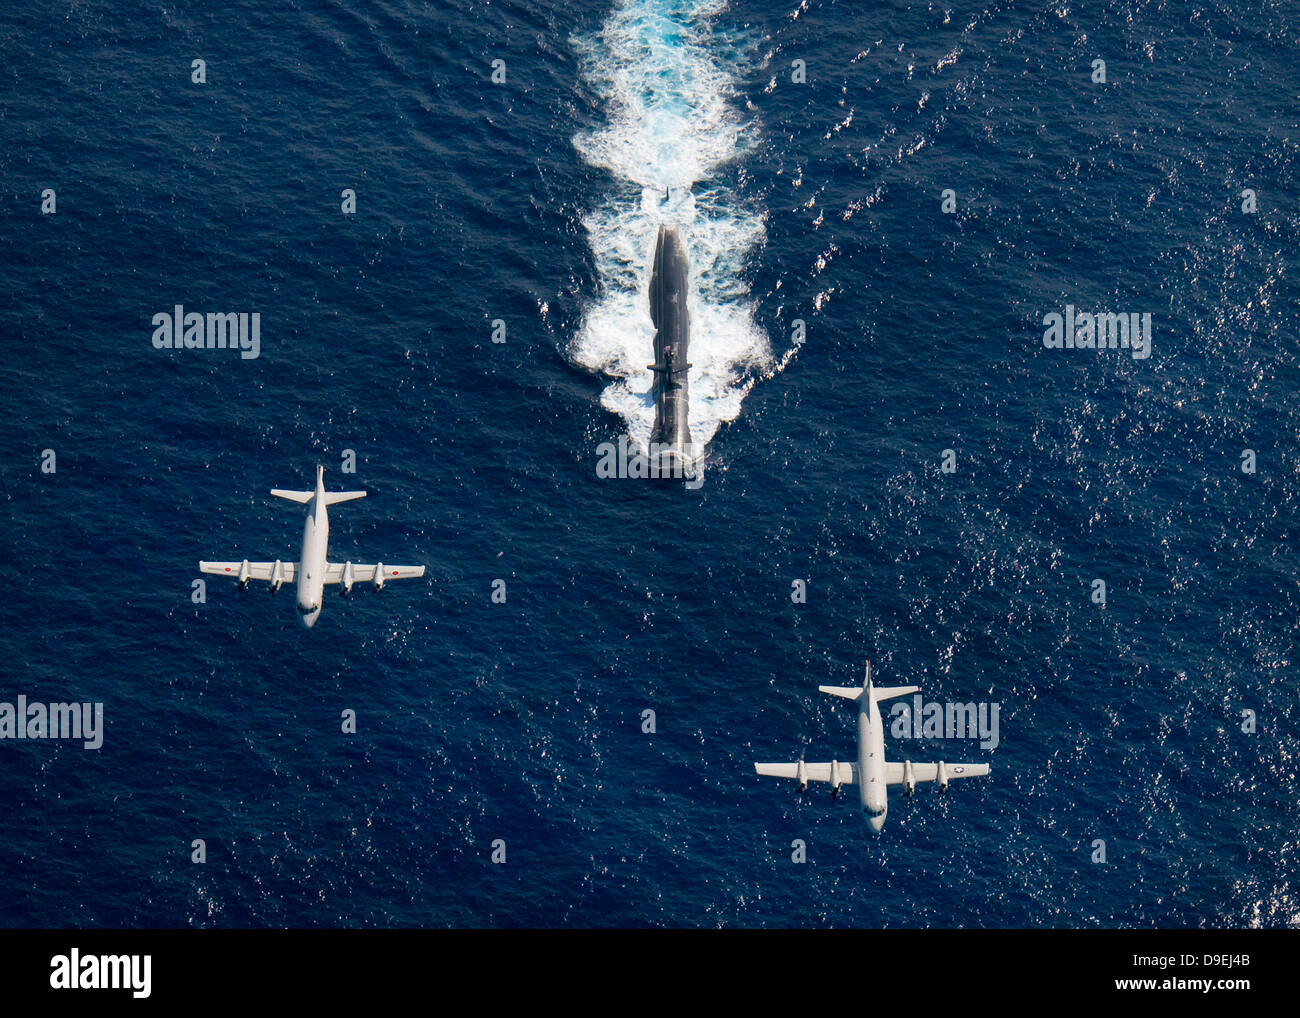 Two P-3 Orion maritime surveillance aircraft fly over attack submarine USS Houston. - Stock Image